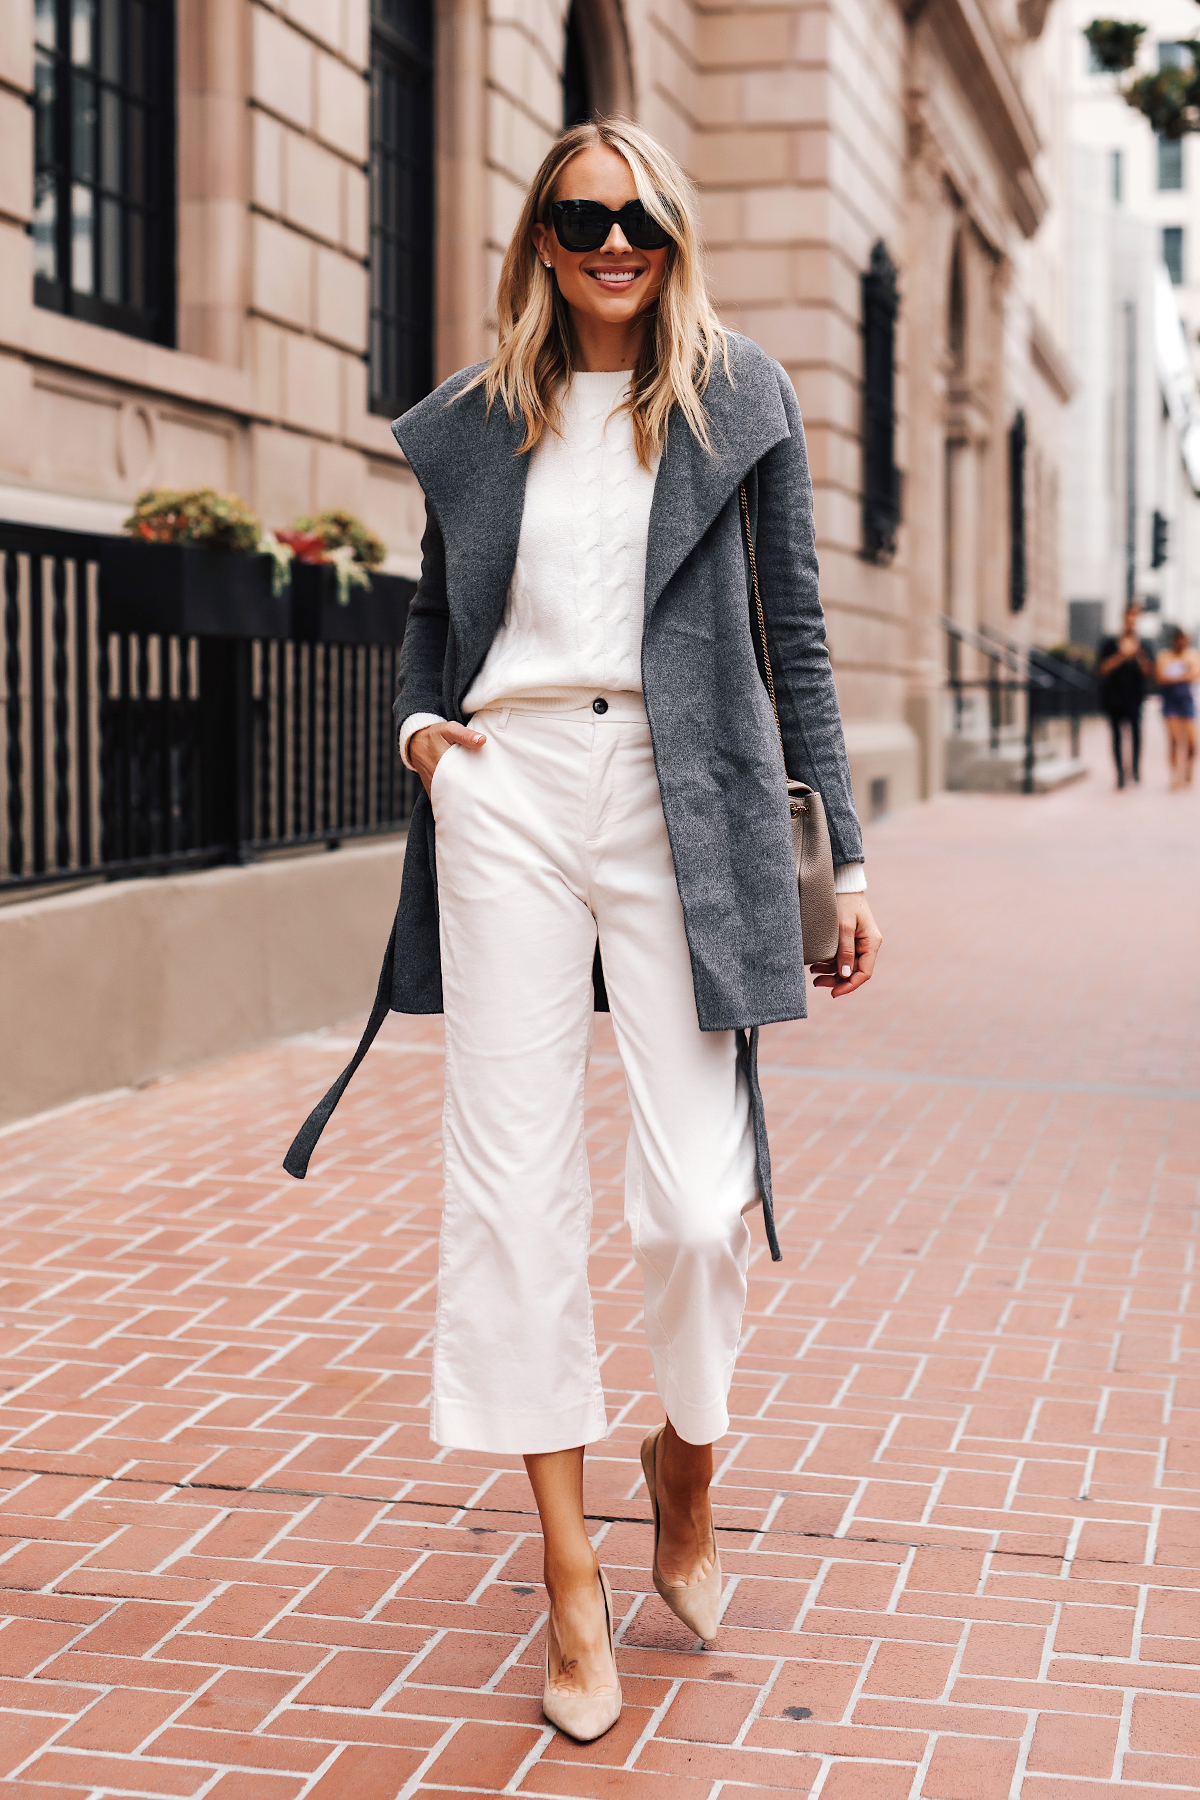 Winter White Corduroy Pants Styled for